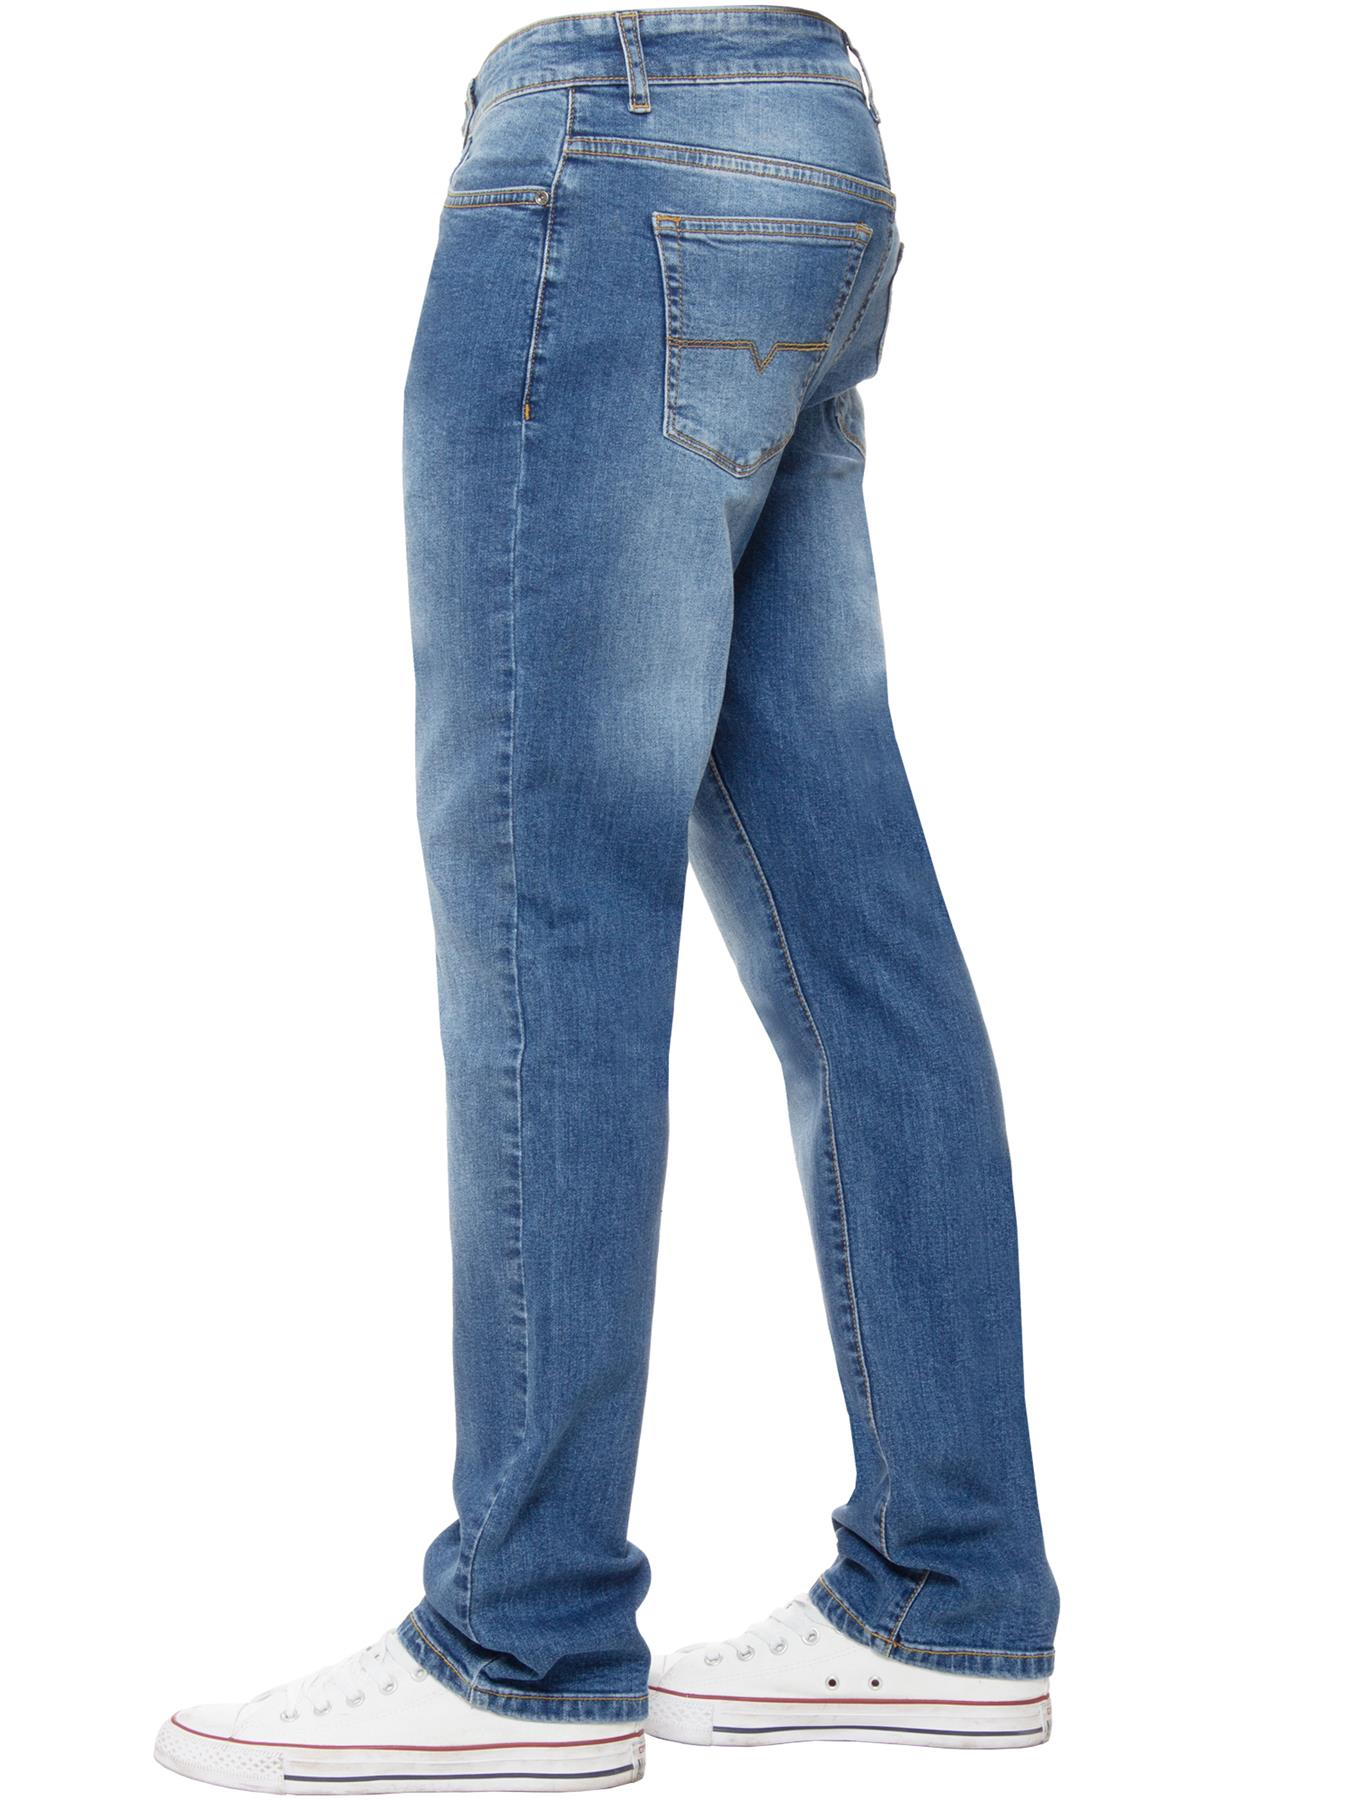 Kruze-Mens-Basic-Straight-Leg-Bootcut-Stretch-Jeans-Denim-Regular-Big-Tall-Waist thumbnail 22